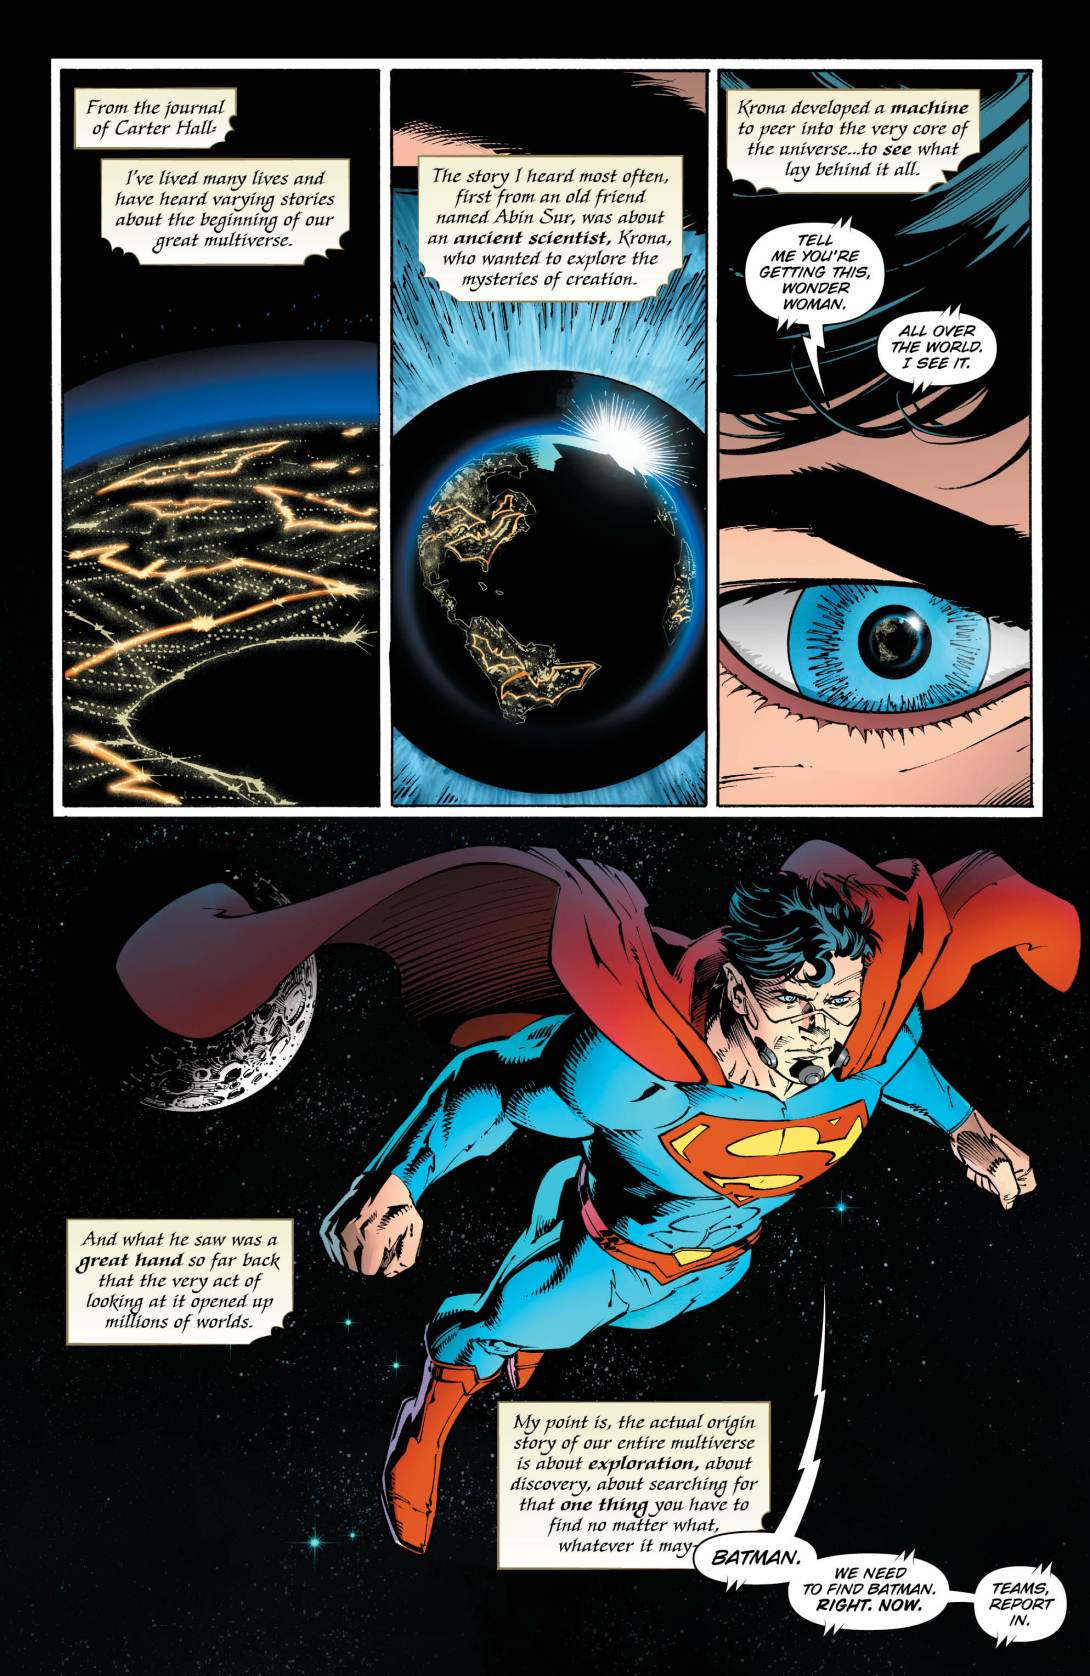 Metal 2 - Page 1 - DC Comics News